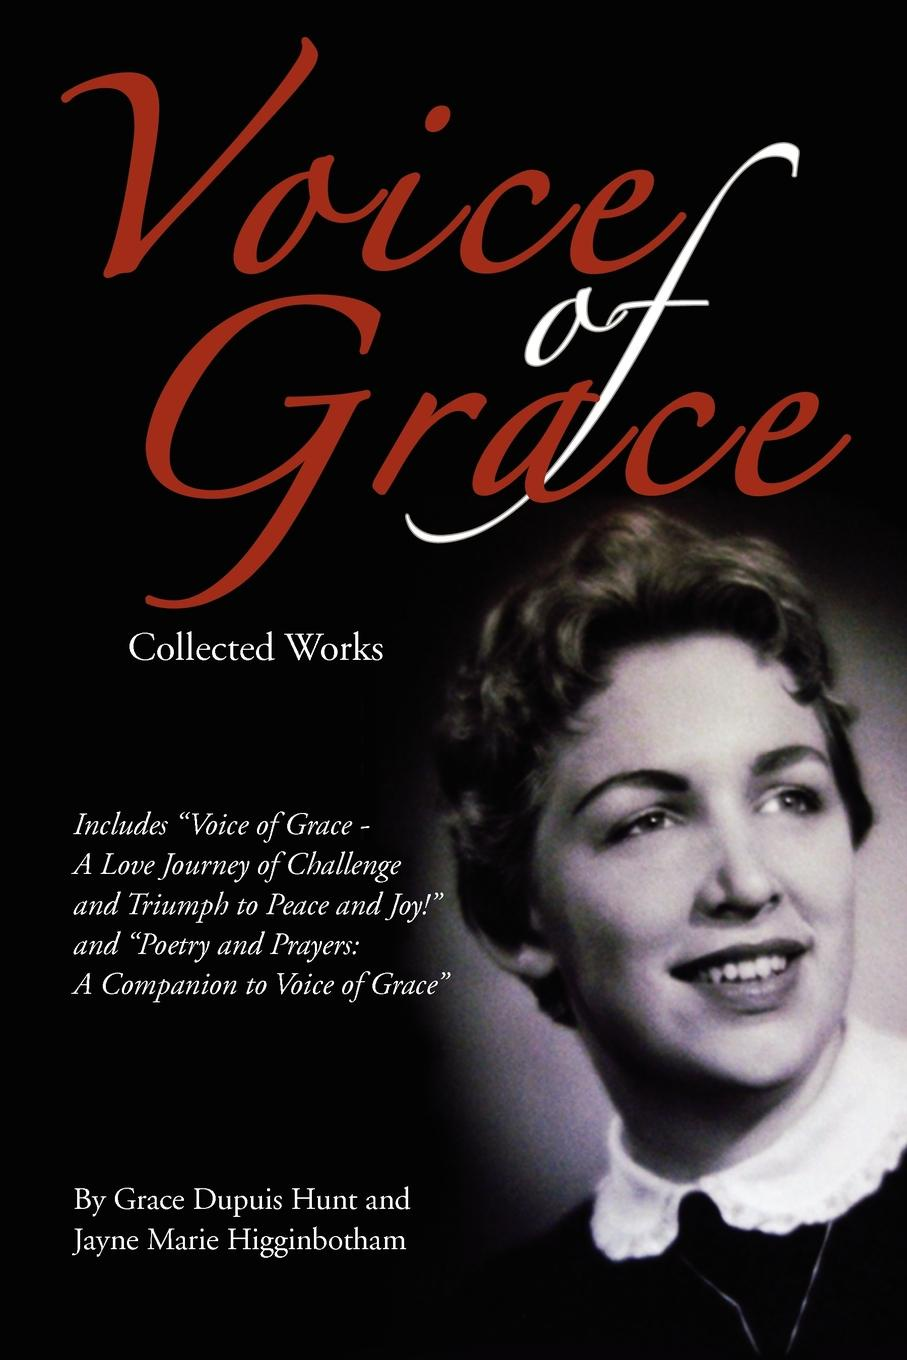 Jayne Marie Higginbotham Voice of Grace Collected Works. Includes Voice of Grace - A Love Journey of Challenge and Triumph to Peace and Joy! and Poetry and Prayers a Companion saving grace tough love